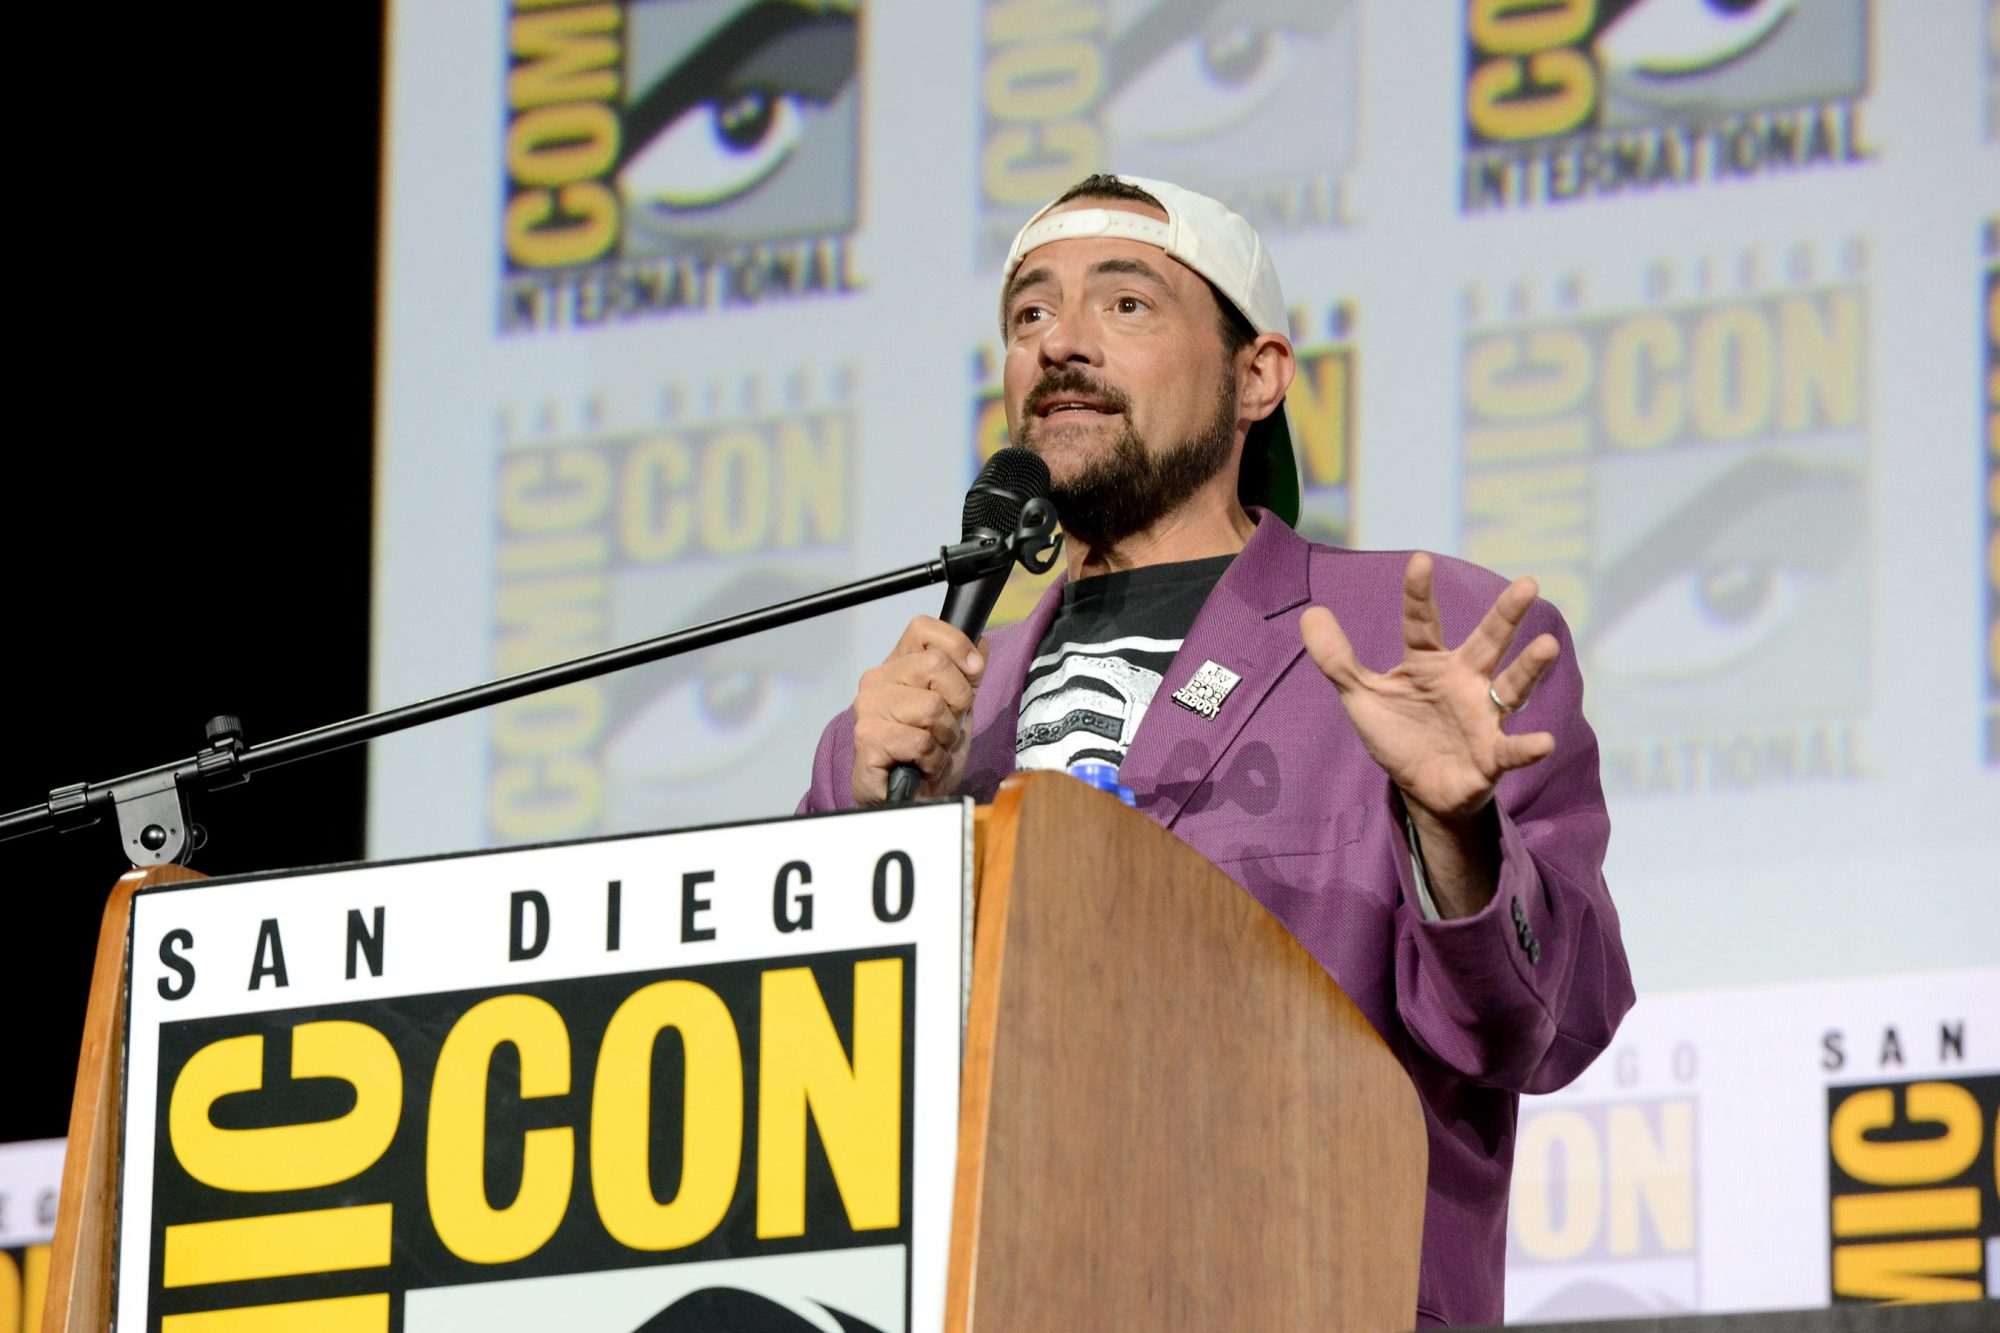 2019 Comic-Con International - Kevin Smith Reboots Hall H!